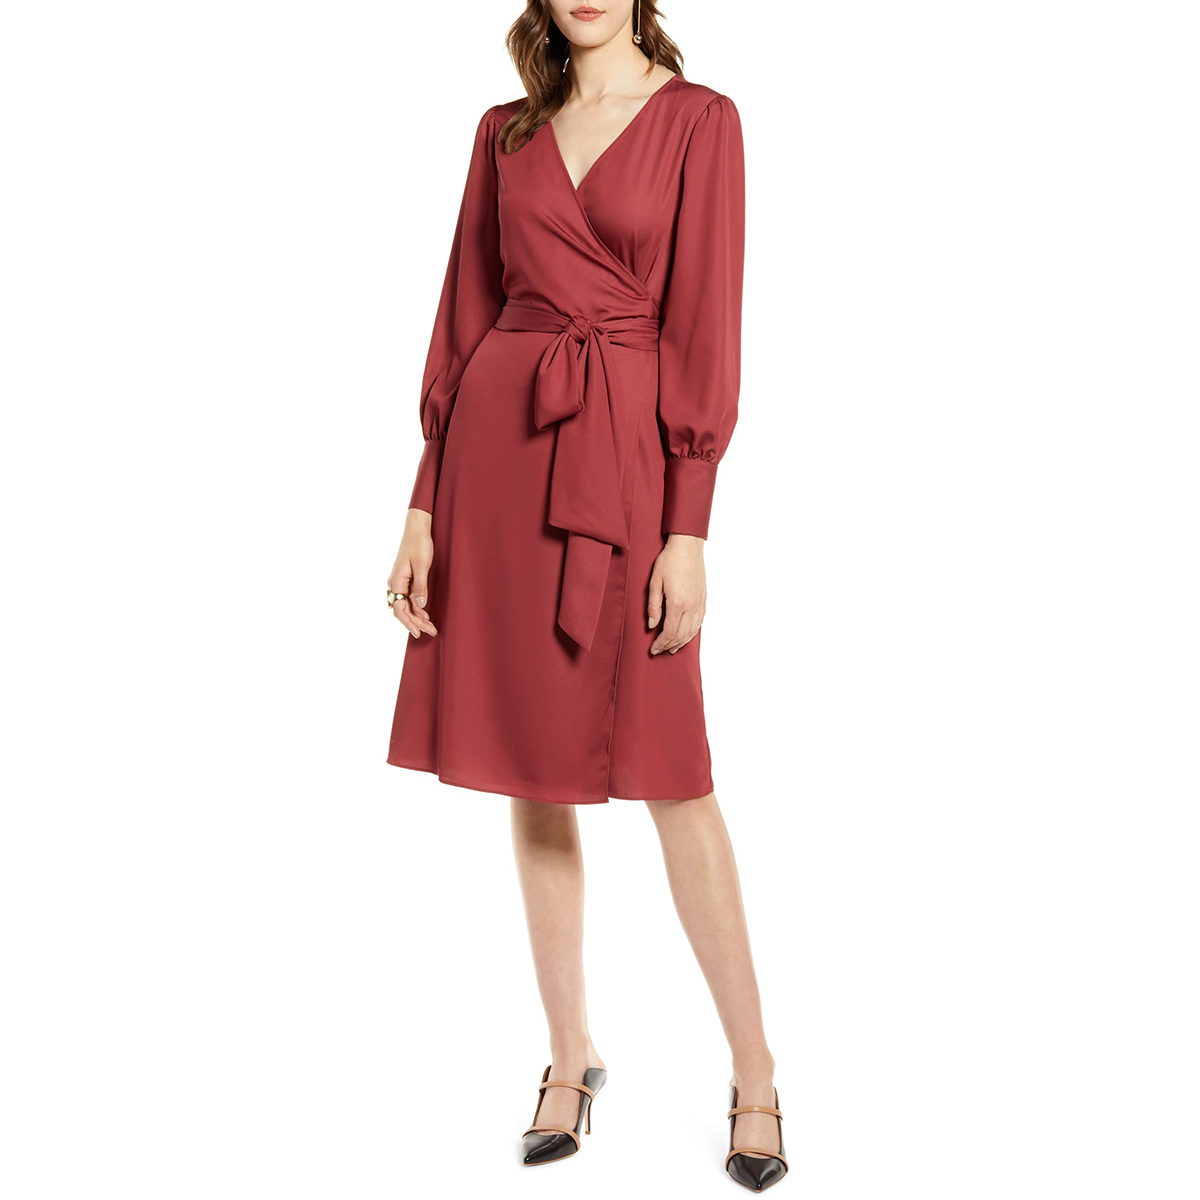 0f1db6e26 Our Favorite Wrap Dress in the Nordstrom Sale Is So Flattering